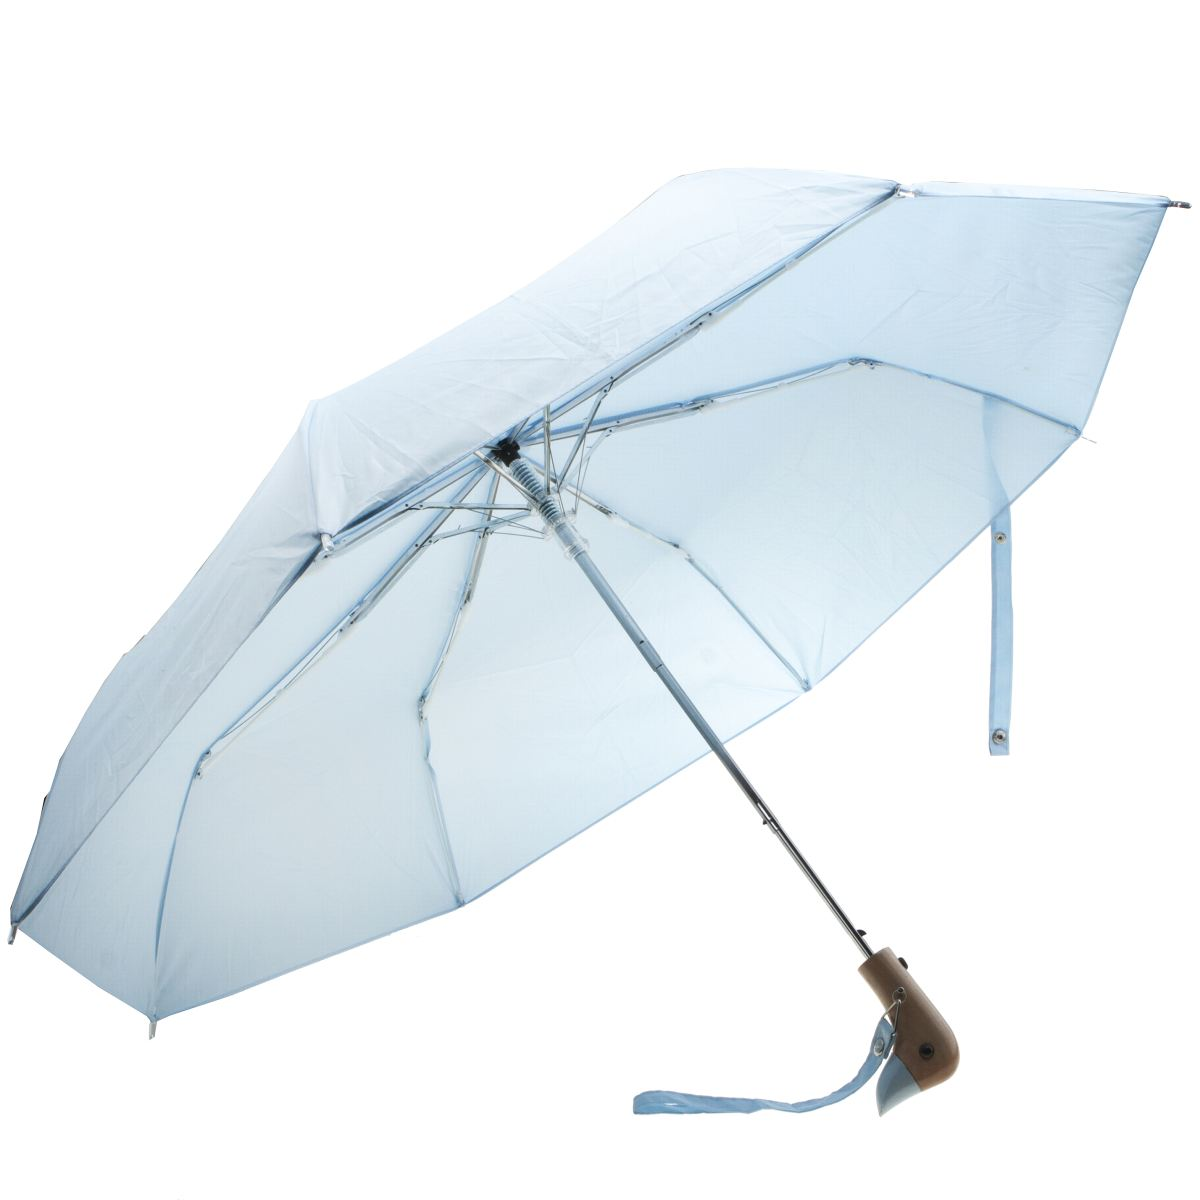 original duckhead Original Duckhead Pale Blue Umbrella Accessory